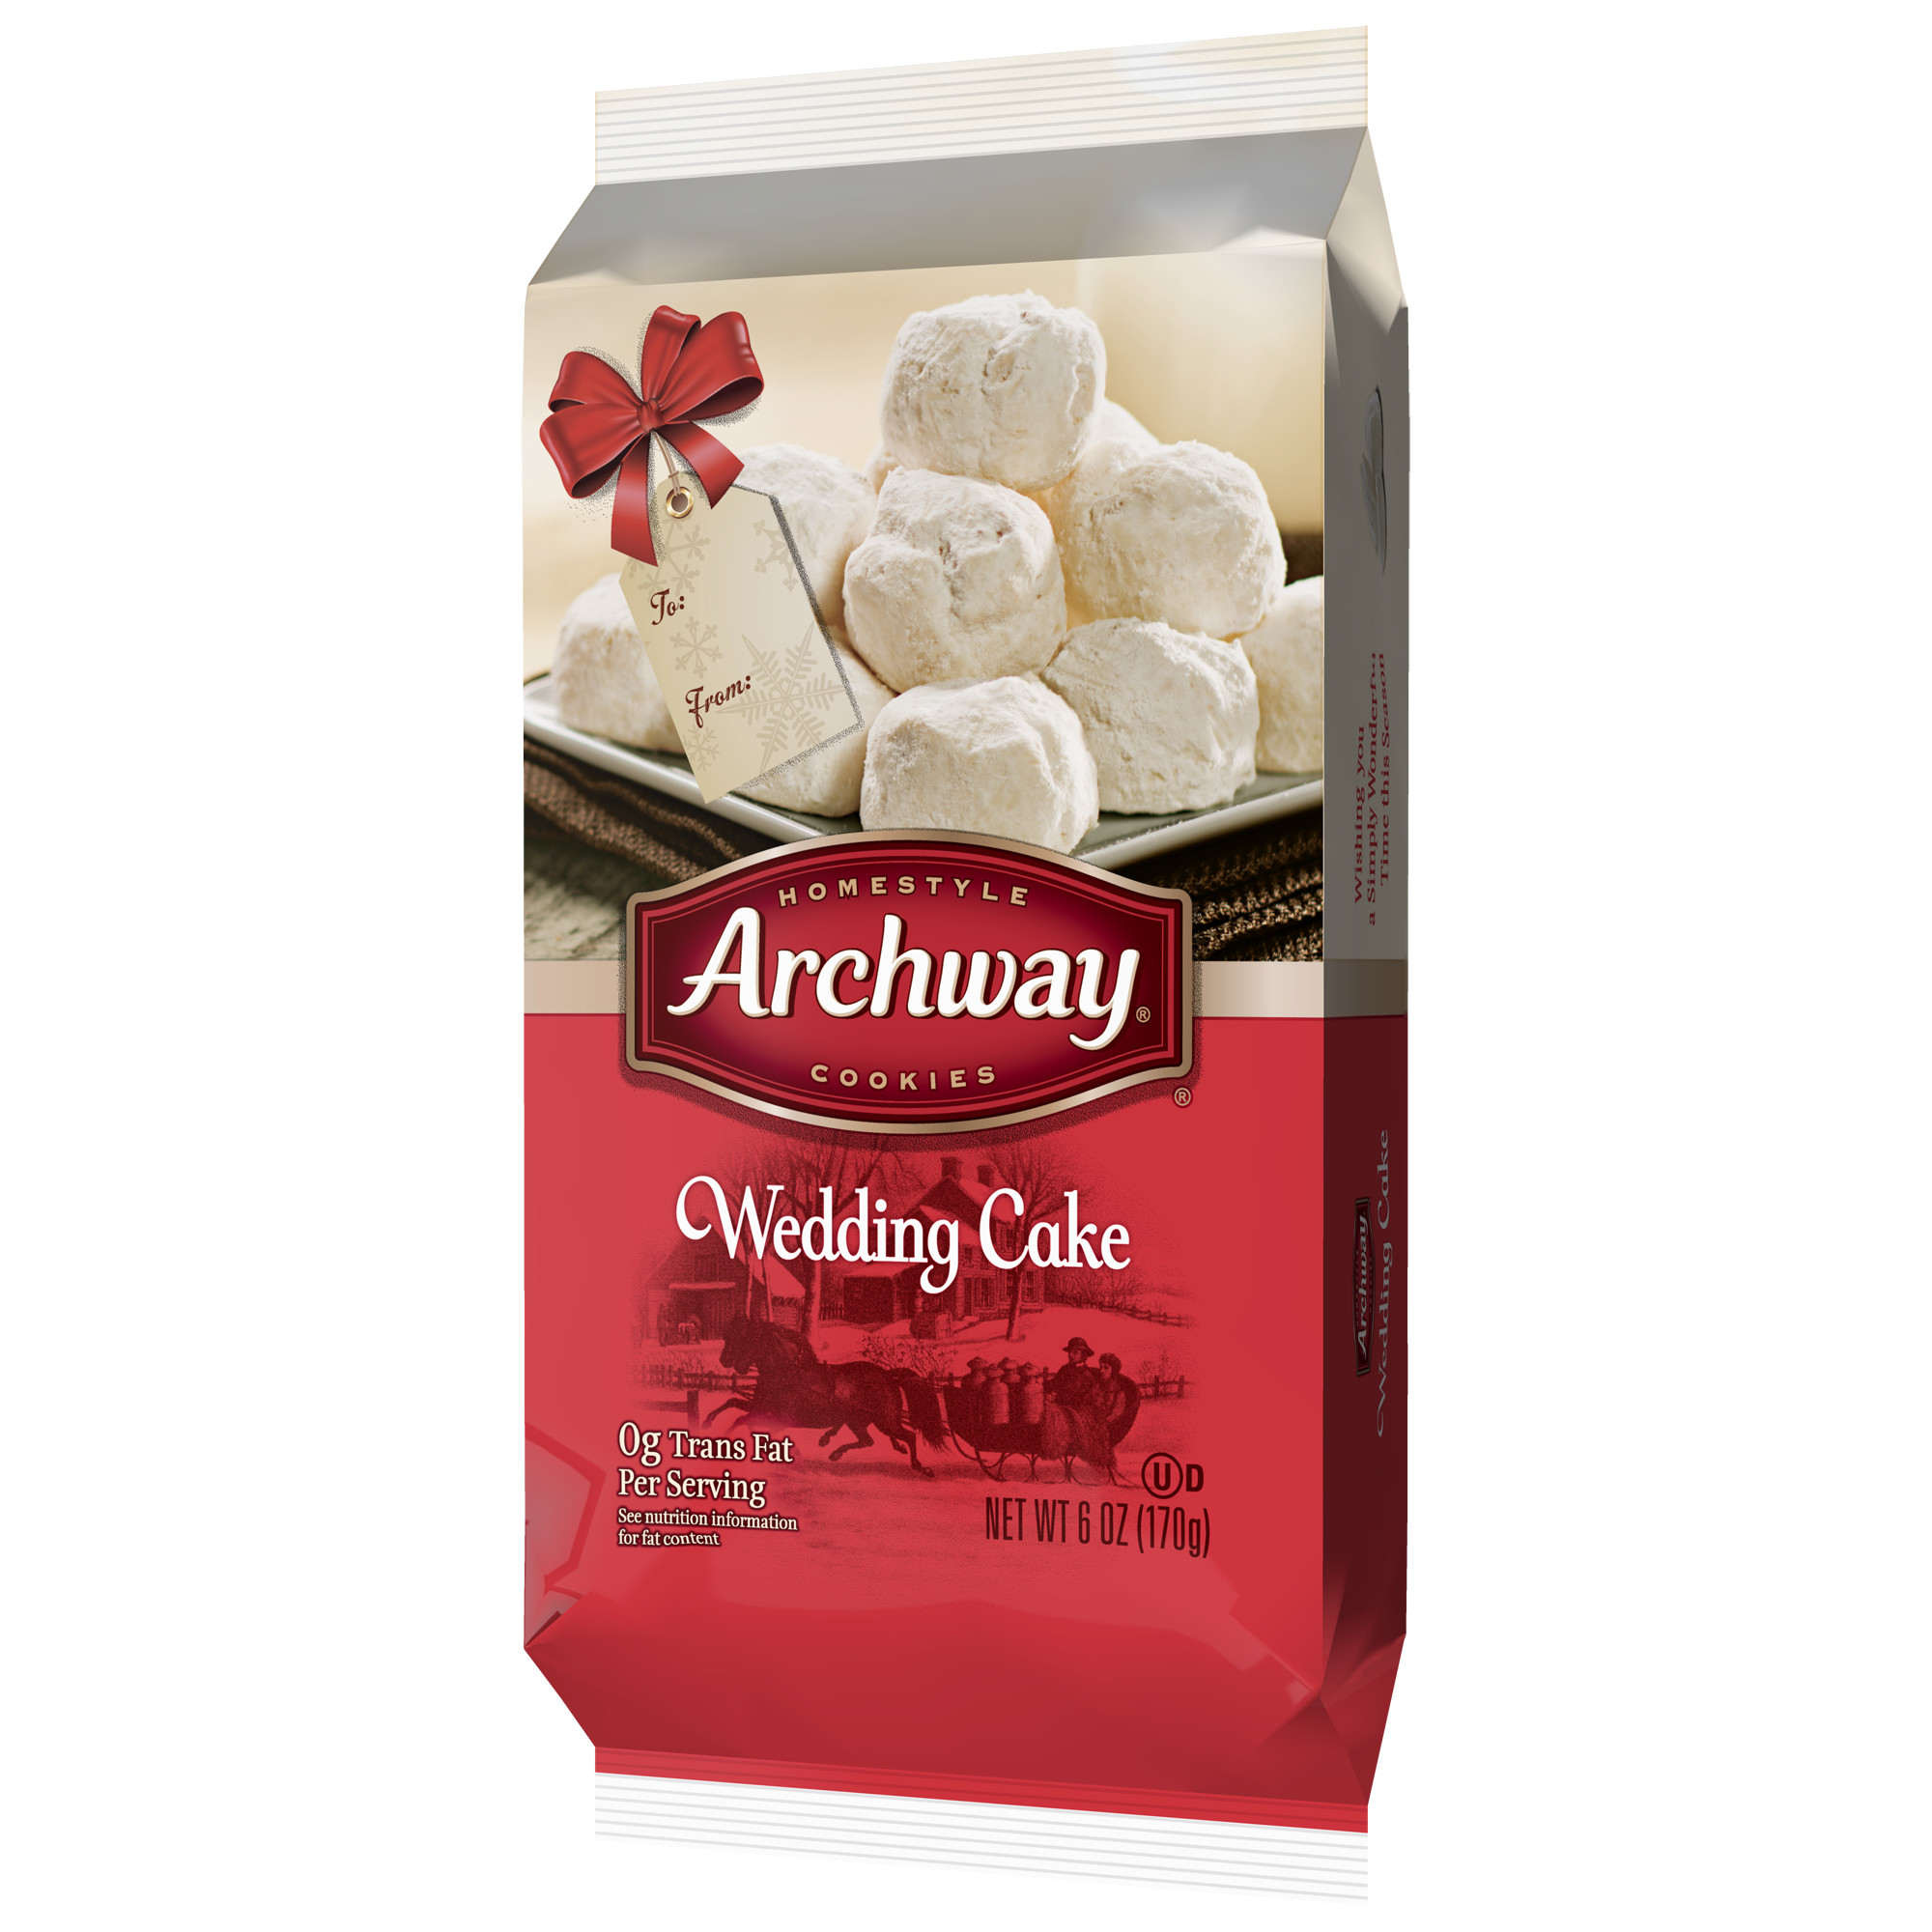 Archway Wedding Cake Cookies, Holiday Limited Edition, 6 Oz ...